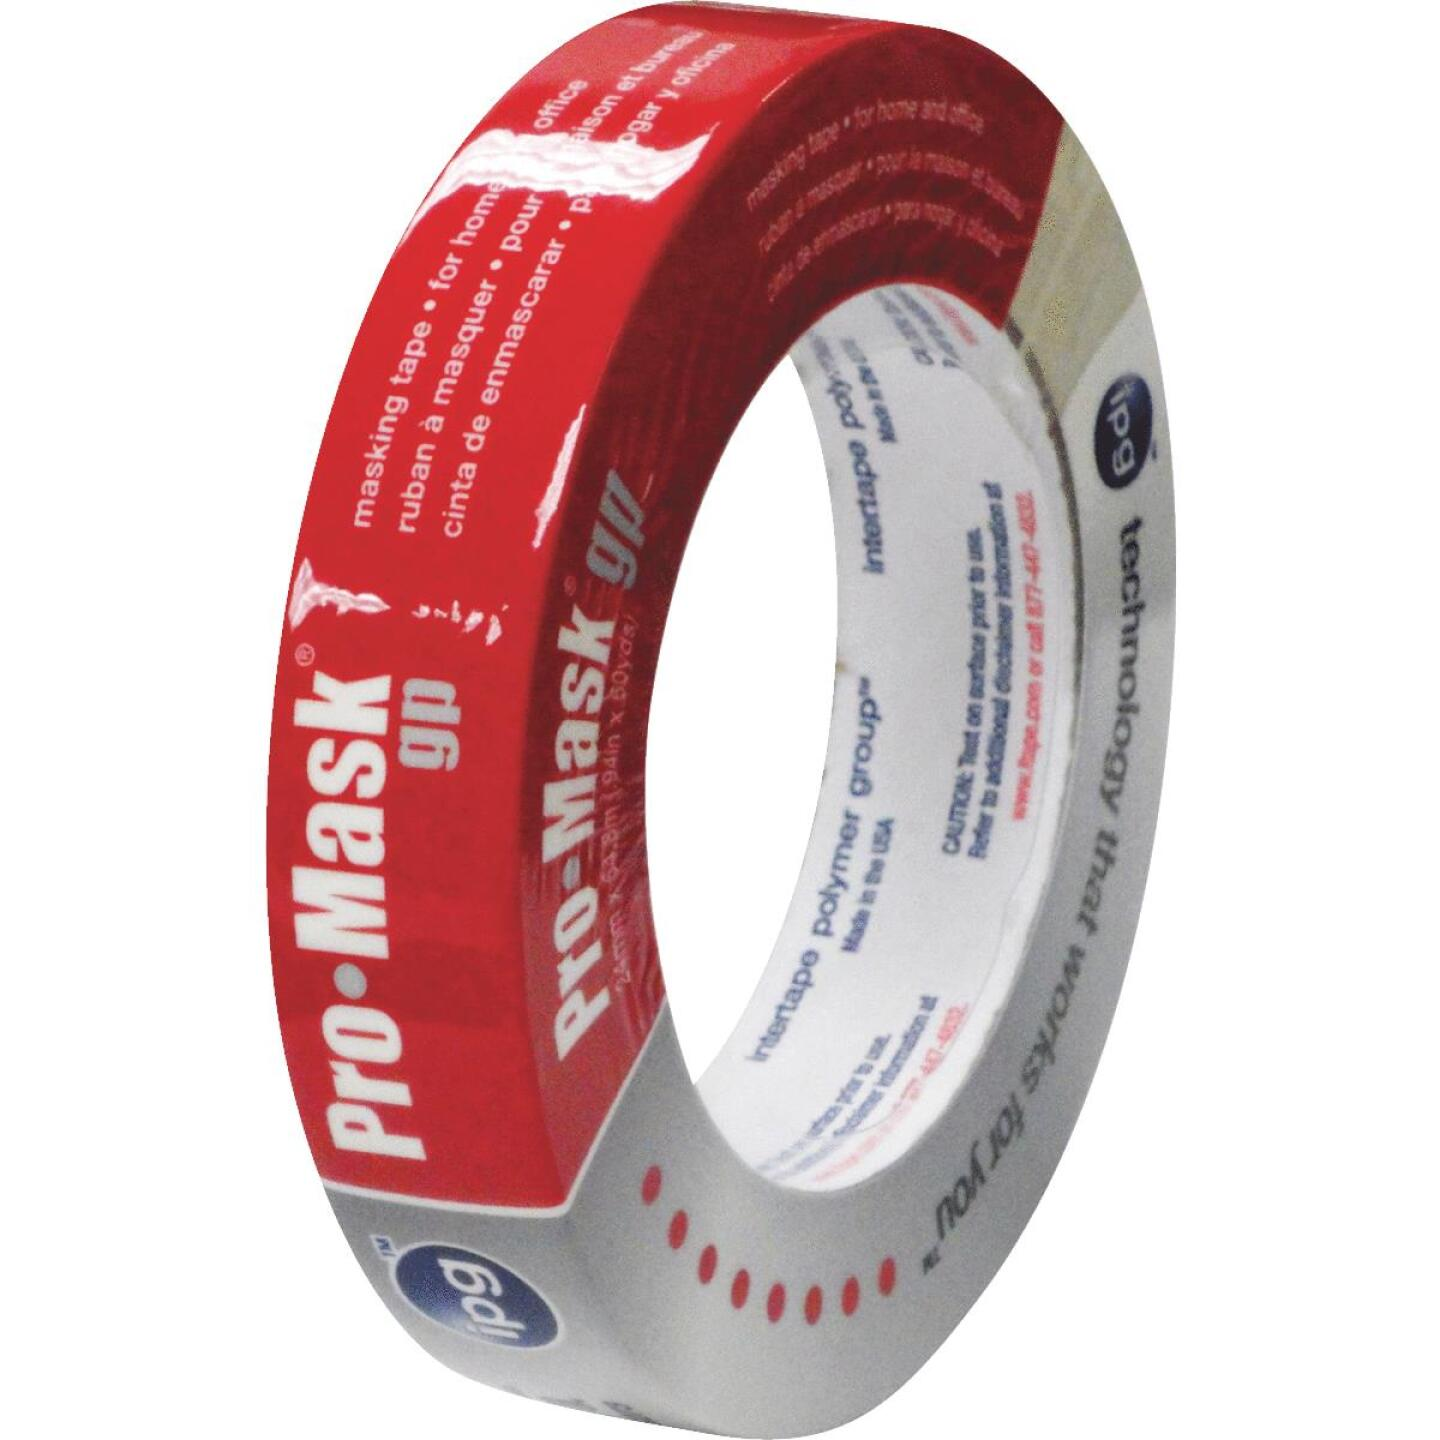 IPG PG500 0.94 In. x 60 Yd. General-Purpose Masking Tape Image 1